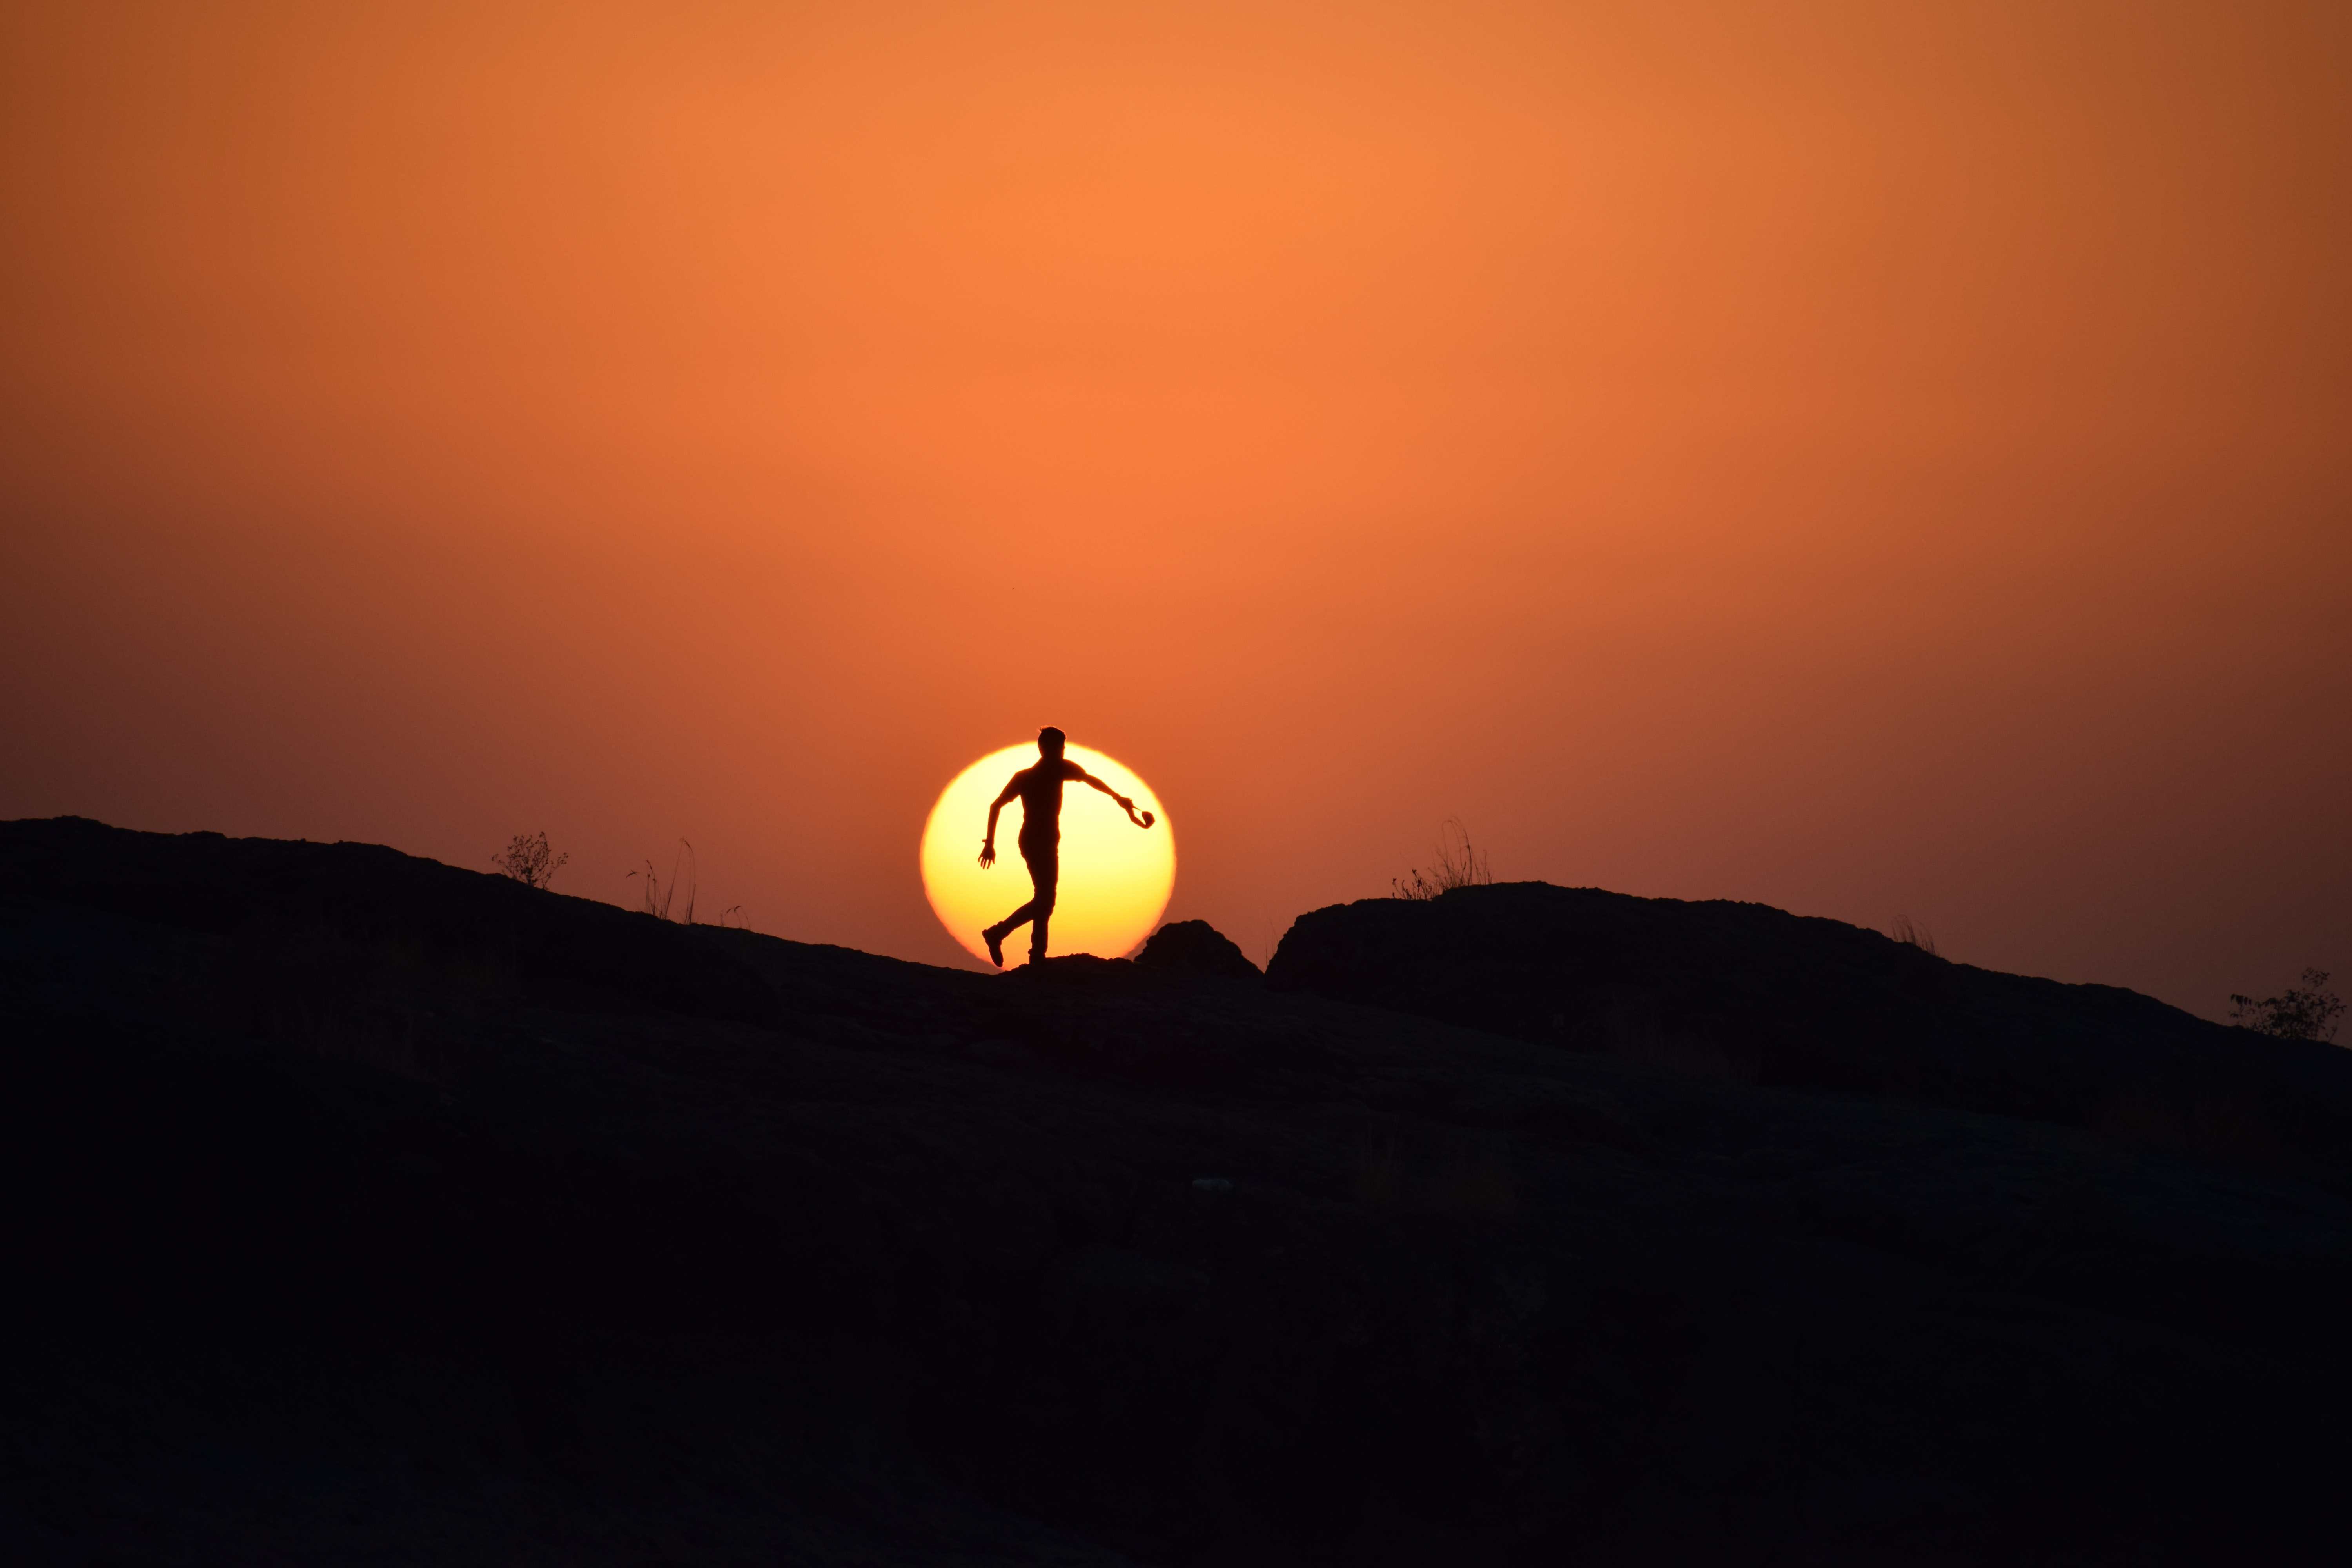 silhouette of man on hill